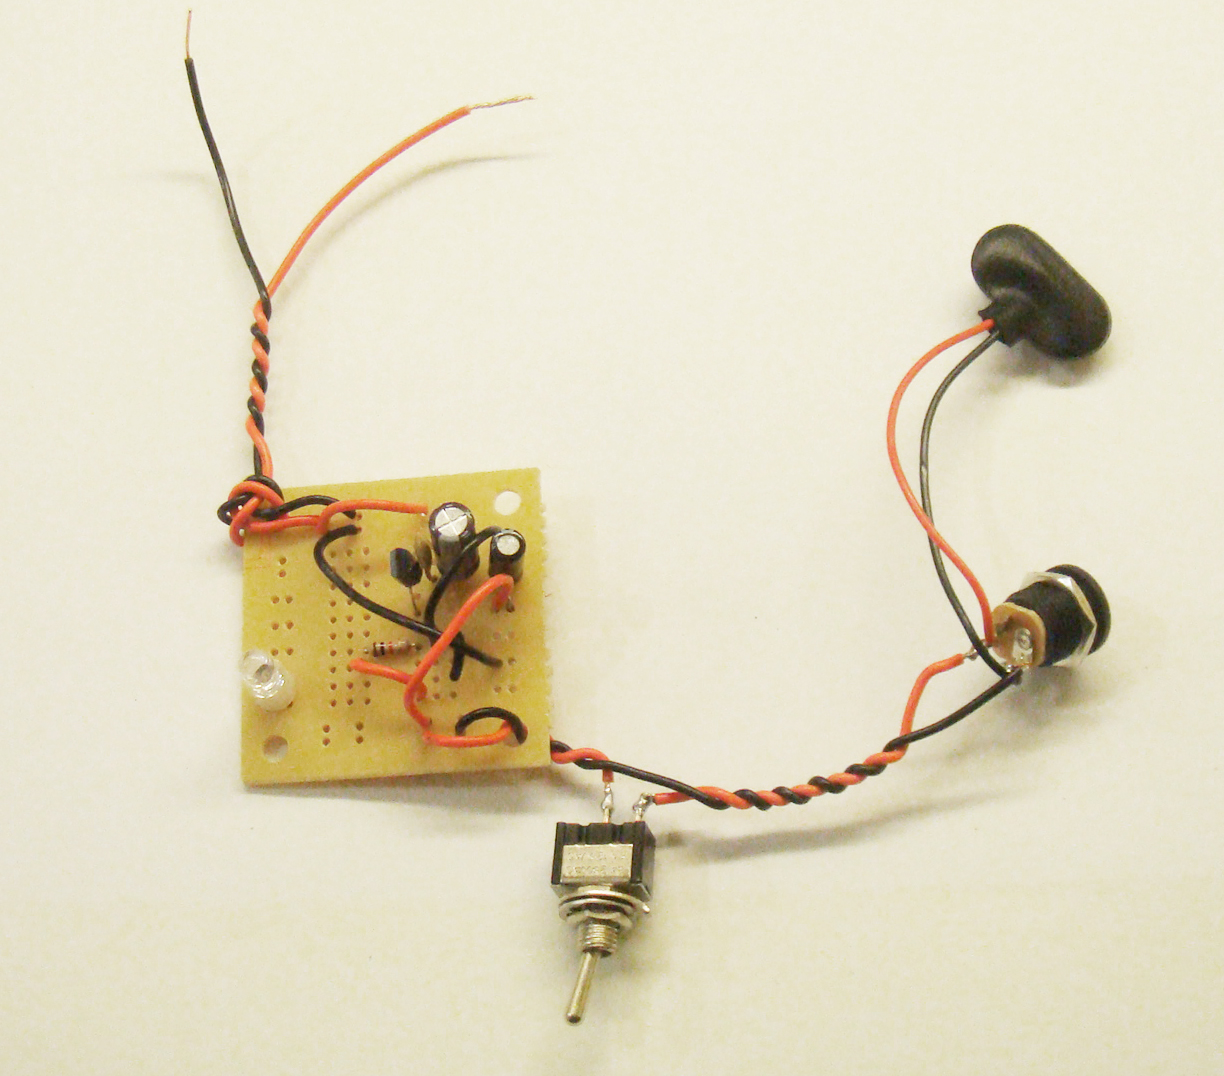 Diy Center Negative Power Supply Audio Circuits Voltage Schematic Get Free Image About Wiring Regulator Circuit Breadboard Complete